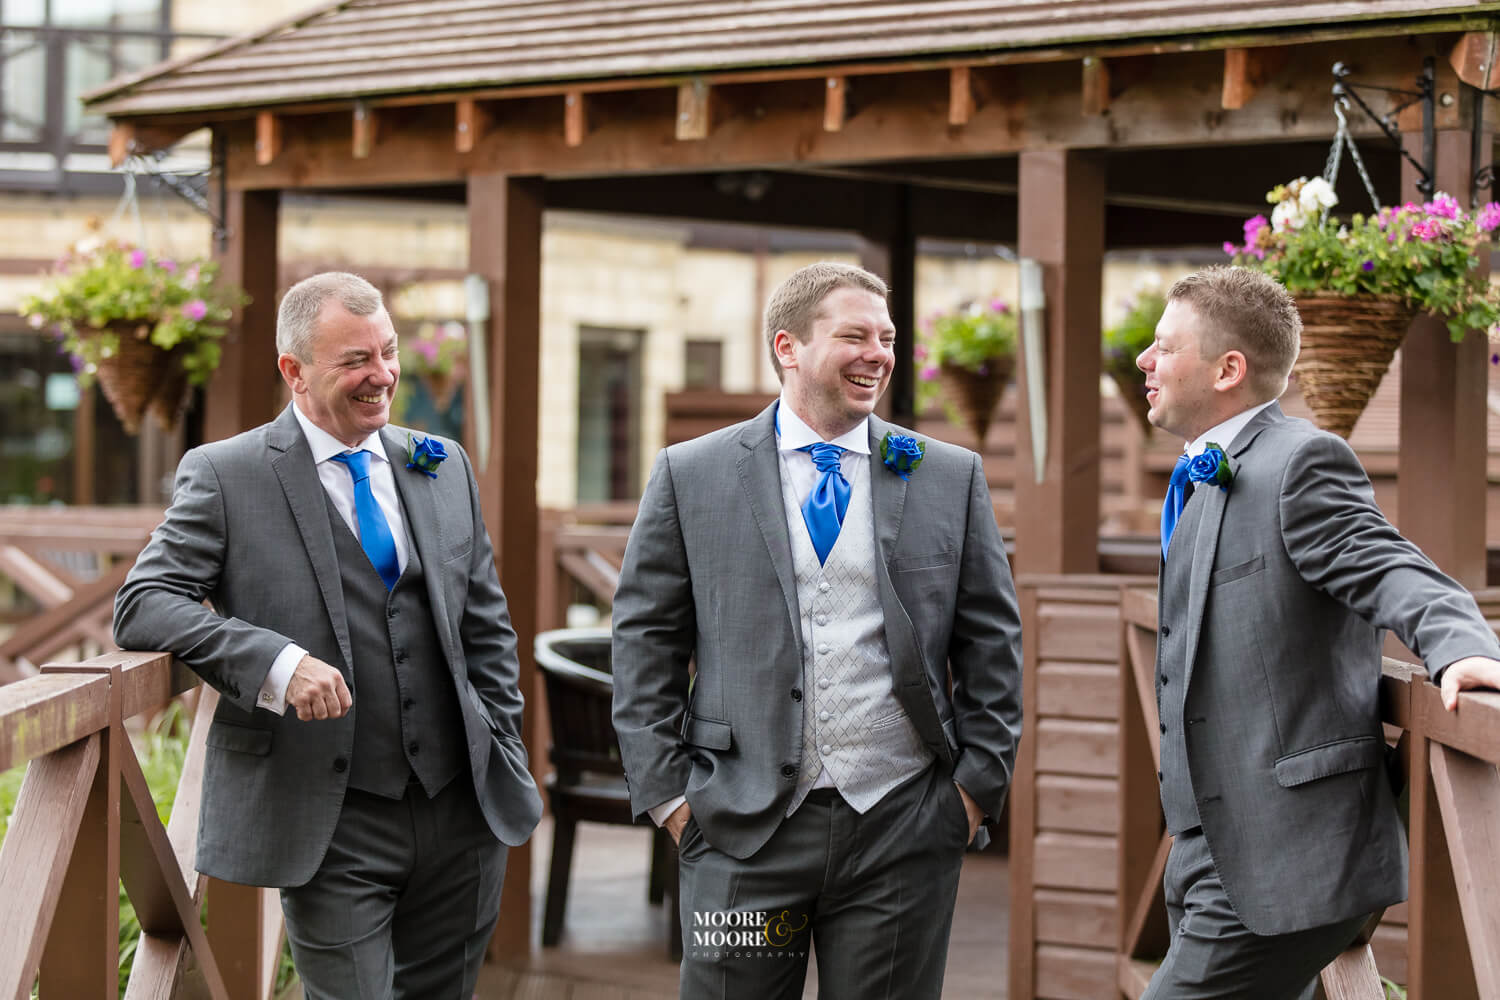 grooms-its-your-wedding-day-too.-wedding-photos-by-moore-moore-photography-fleet-hampshire-8402